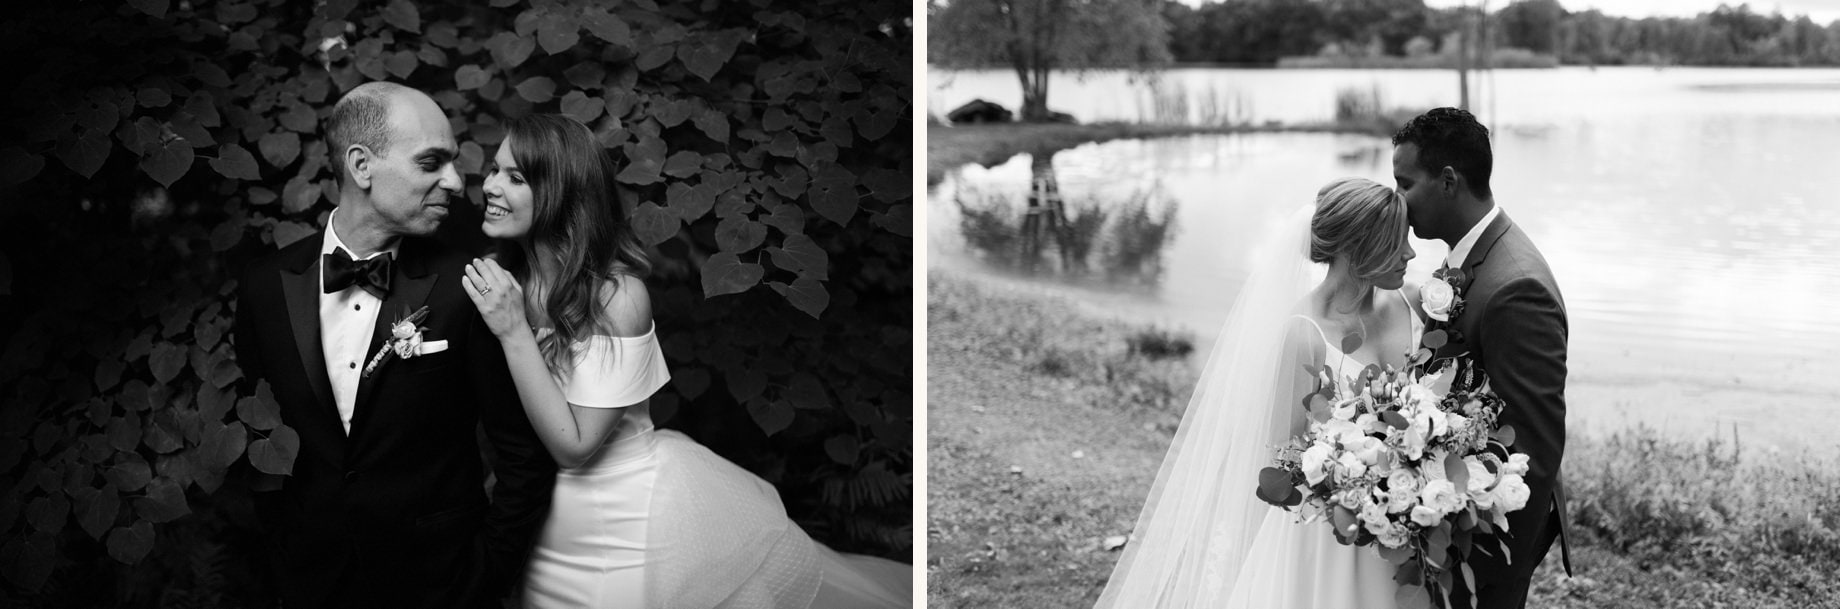 black and white portraits of bride and groom